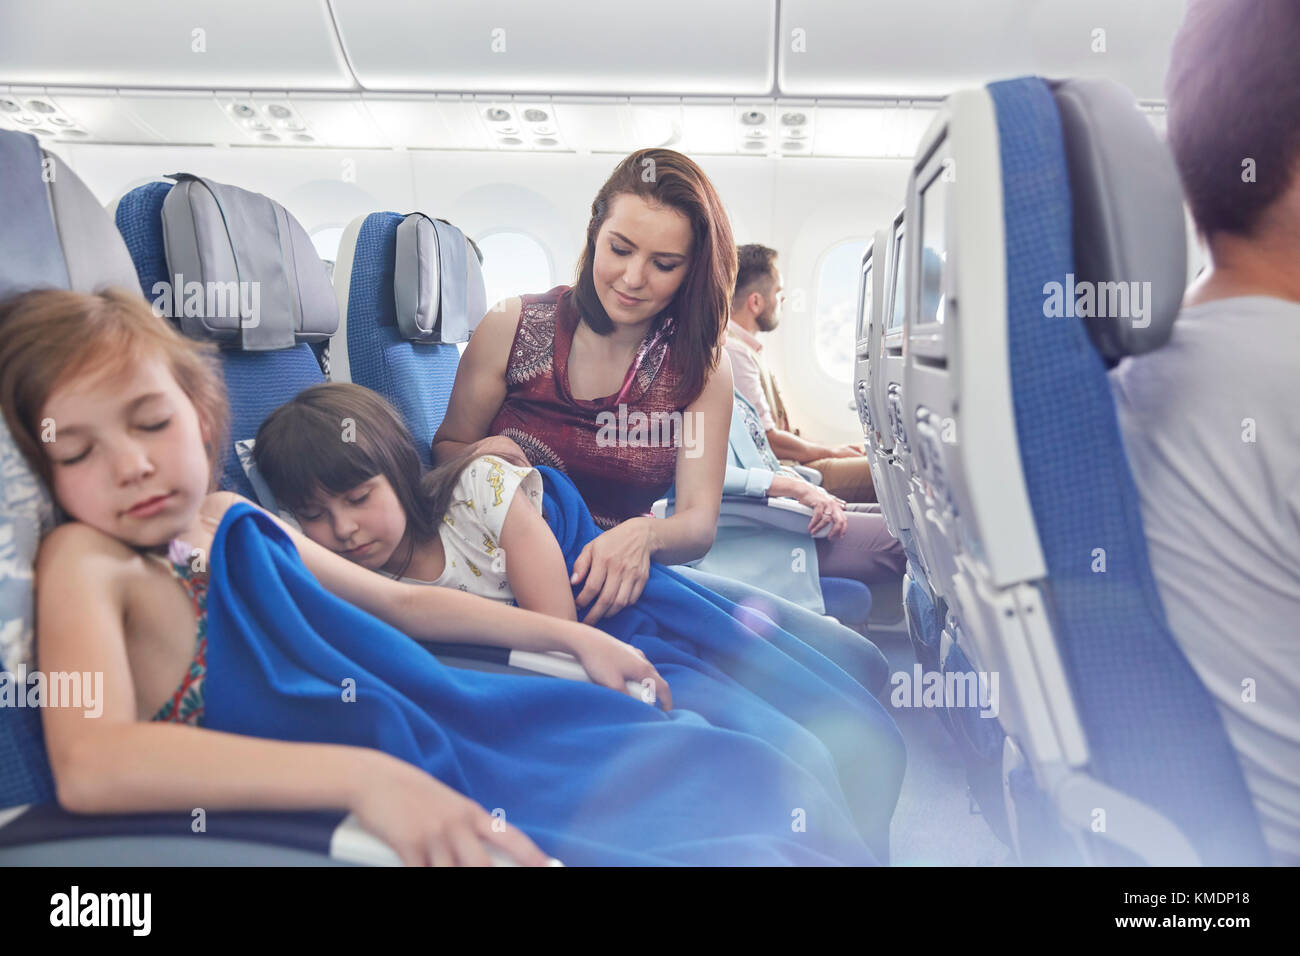 Mother putting blanket on sleeping daughter on airplane - Stock Image